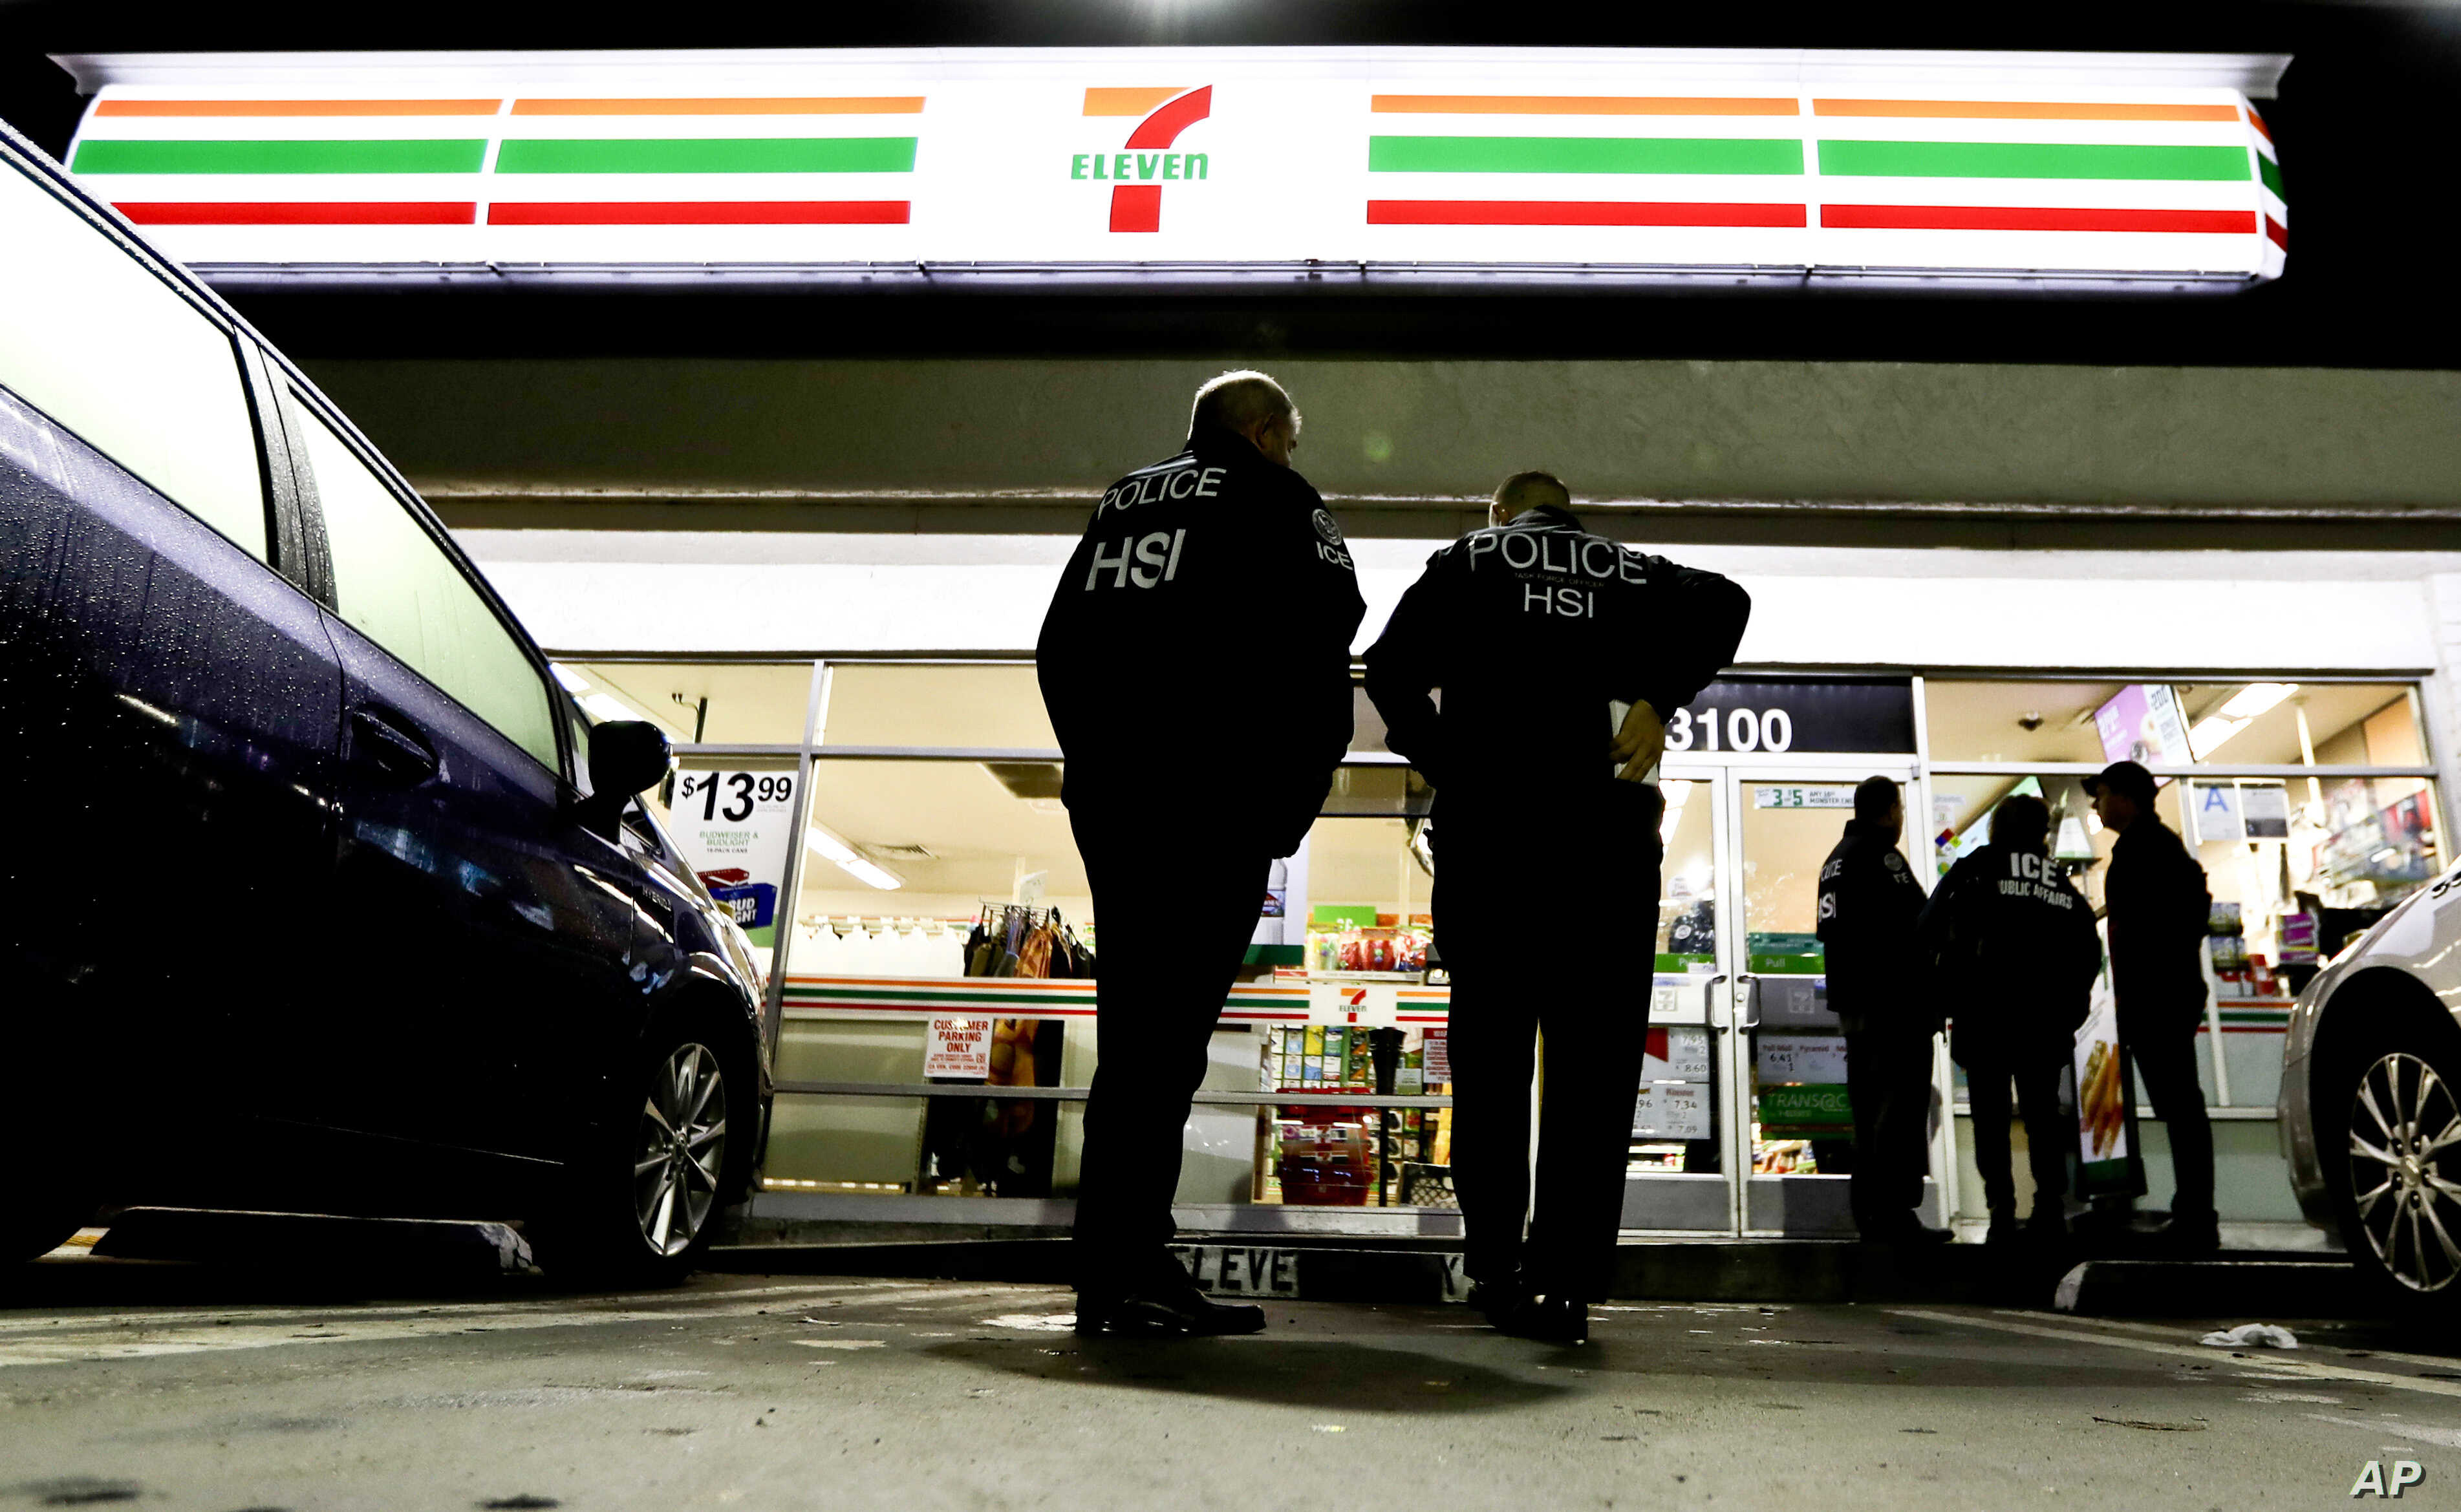 7-Eleven Probe Opens New Front on Immigration | Voice of America